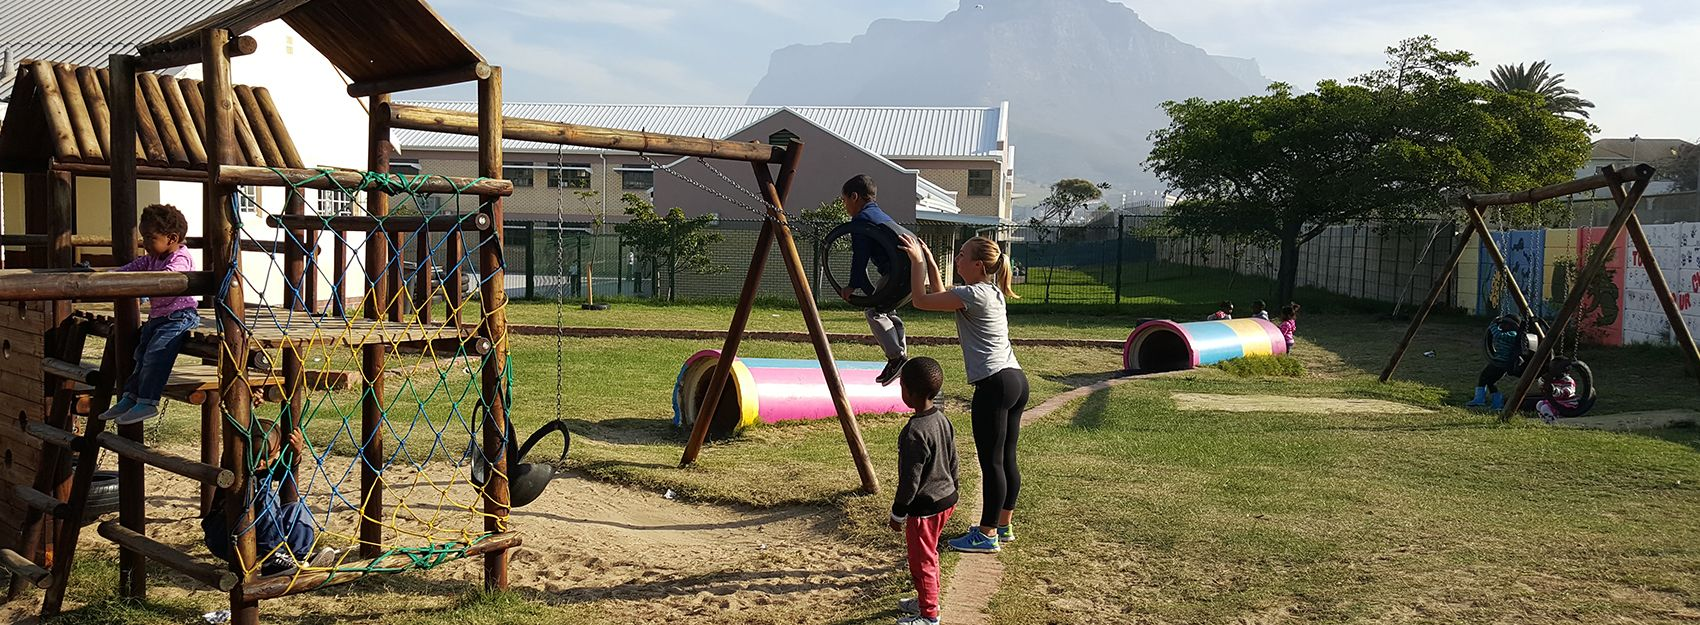 volunteer abroad student pushing children on a swing